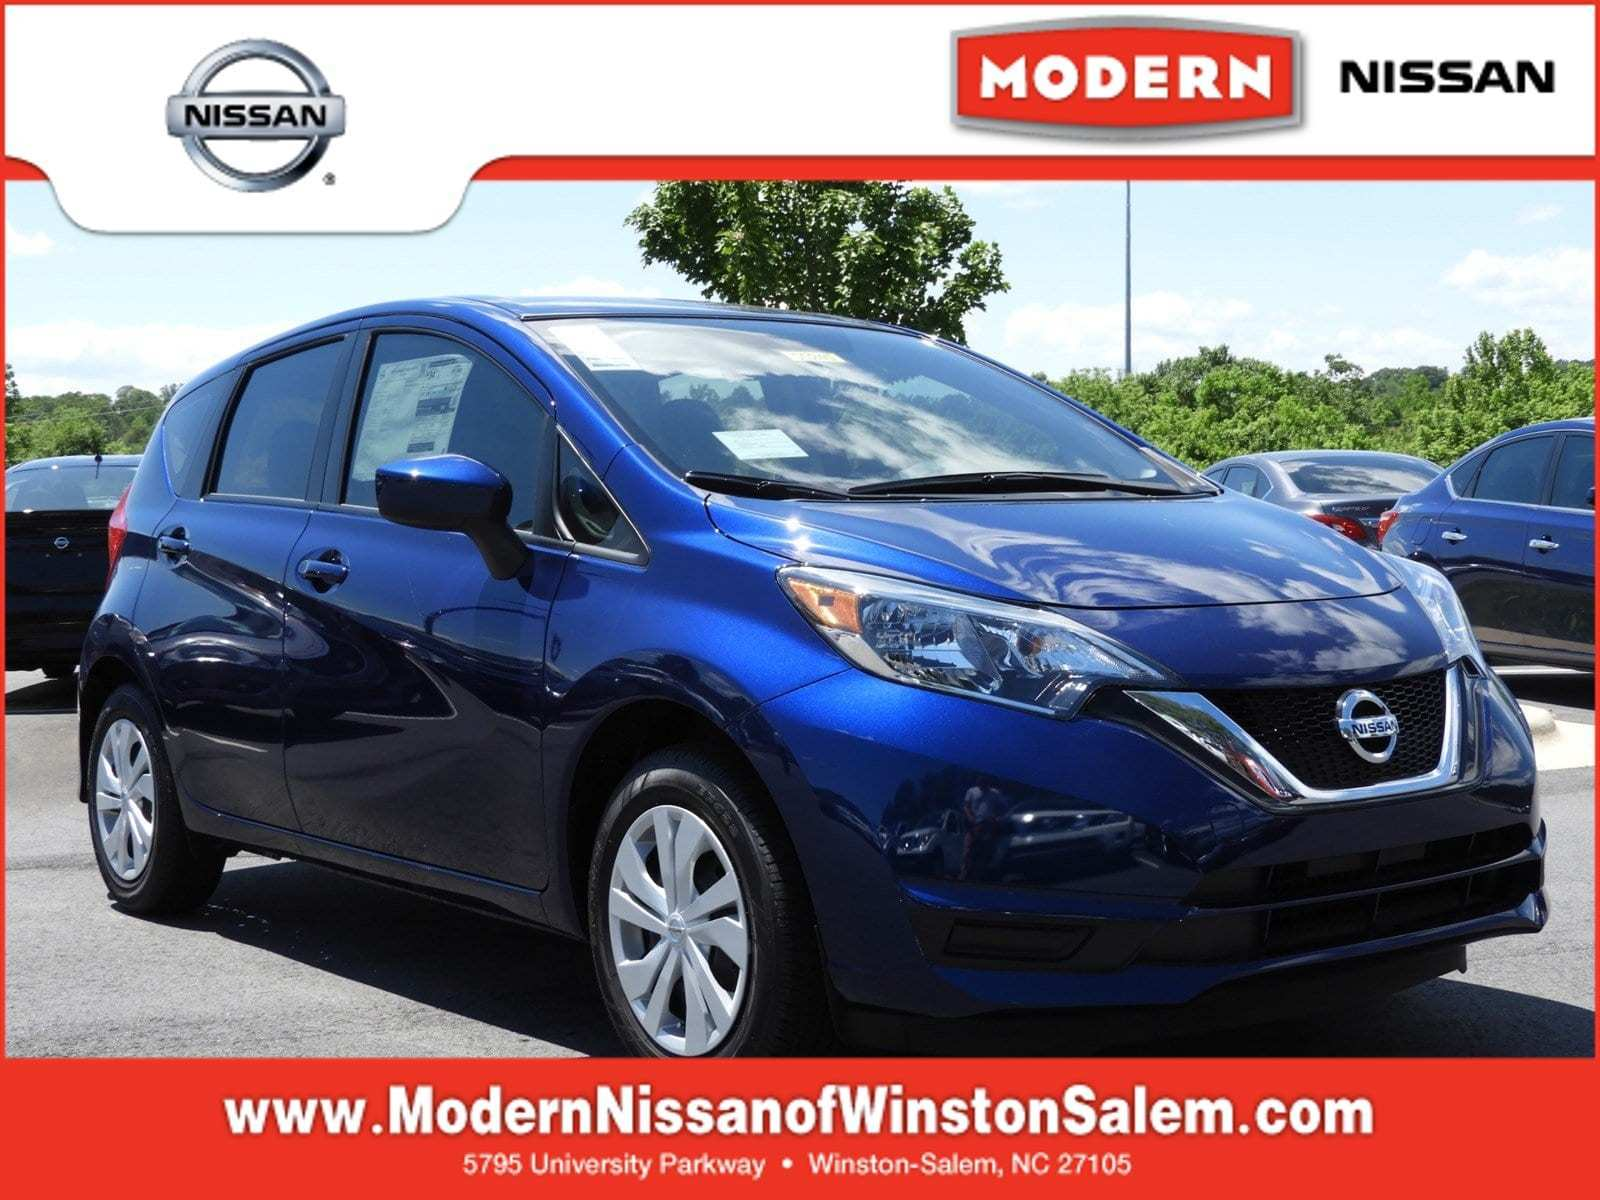 92 The Best 2019 Nissan Versa Note Price Design And Review